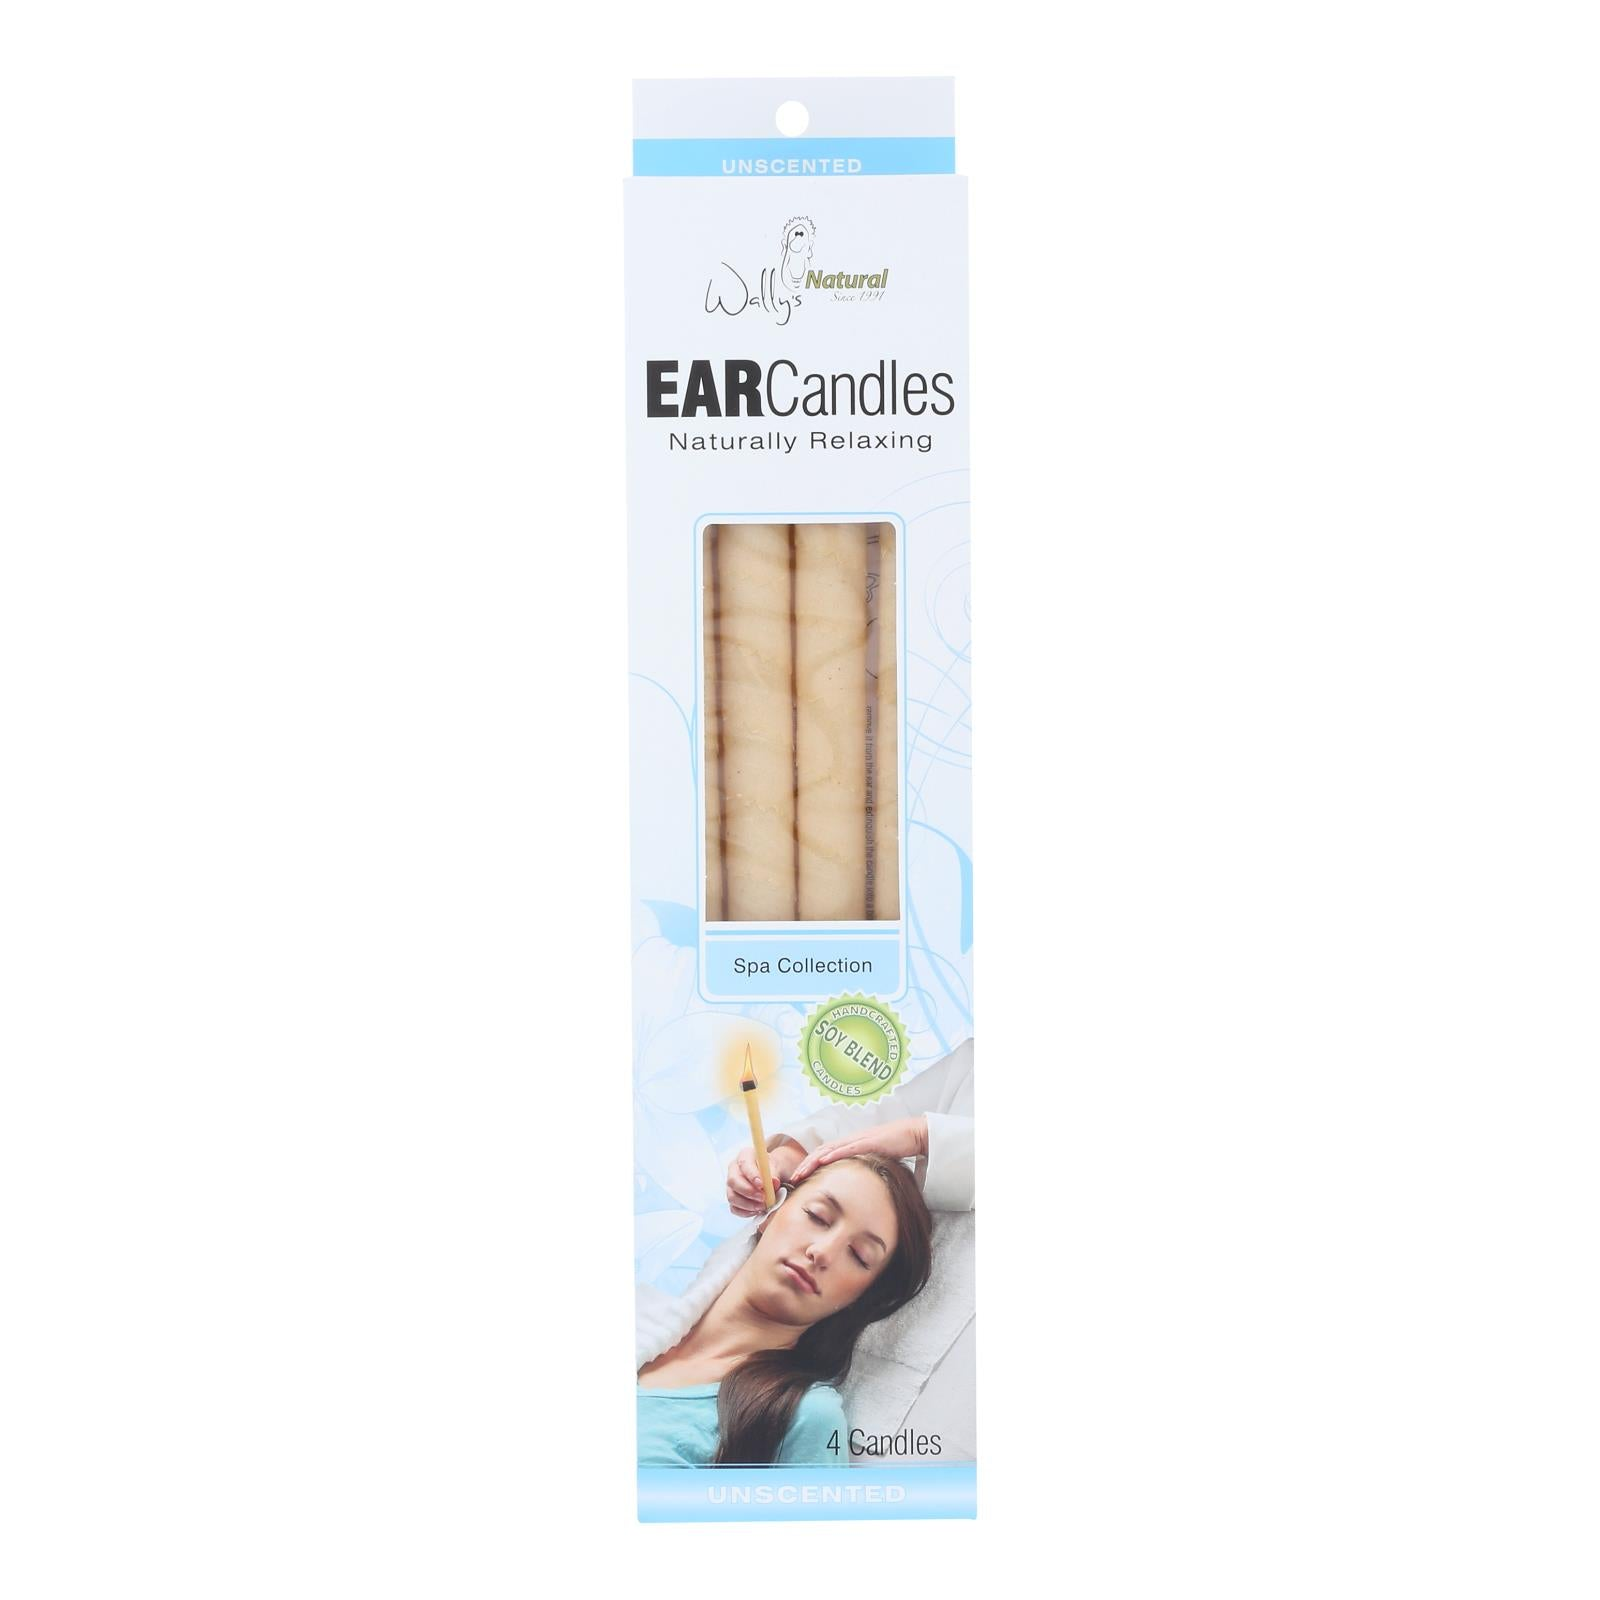 Wally\'s Ear Candles Plain Paraffin - 4 Candles